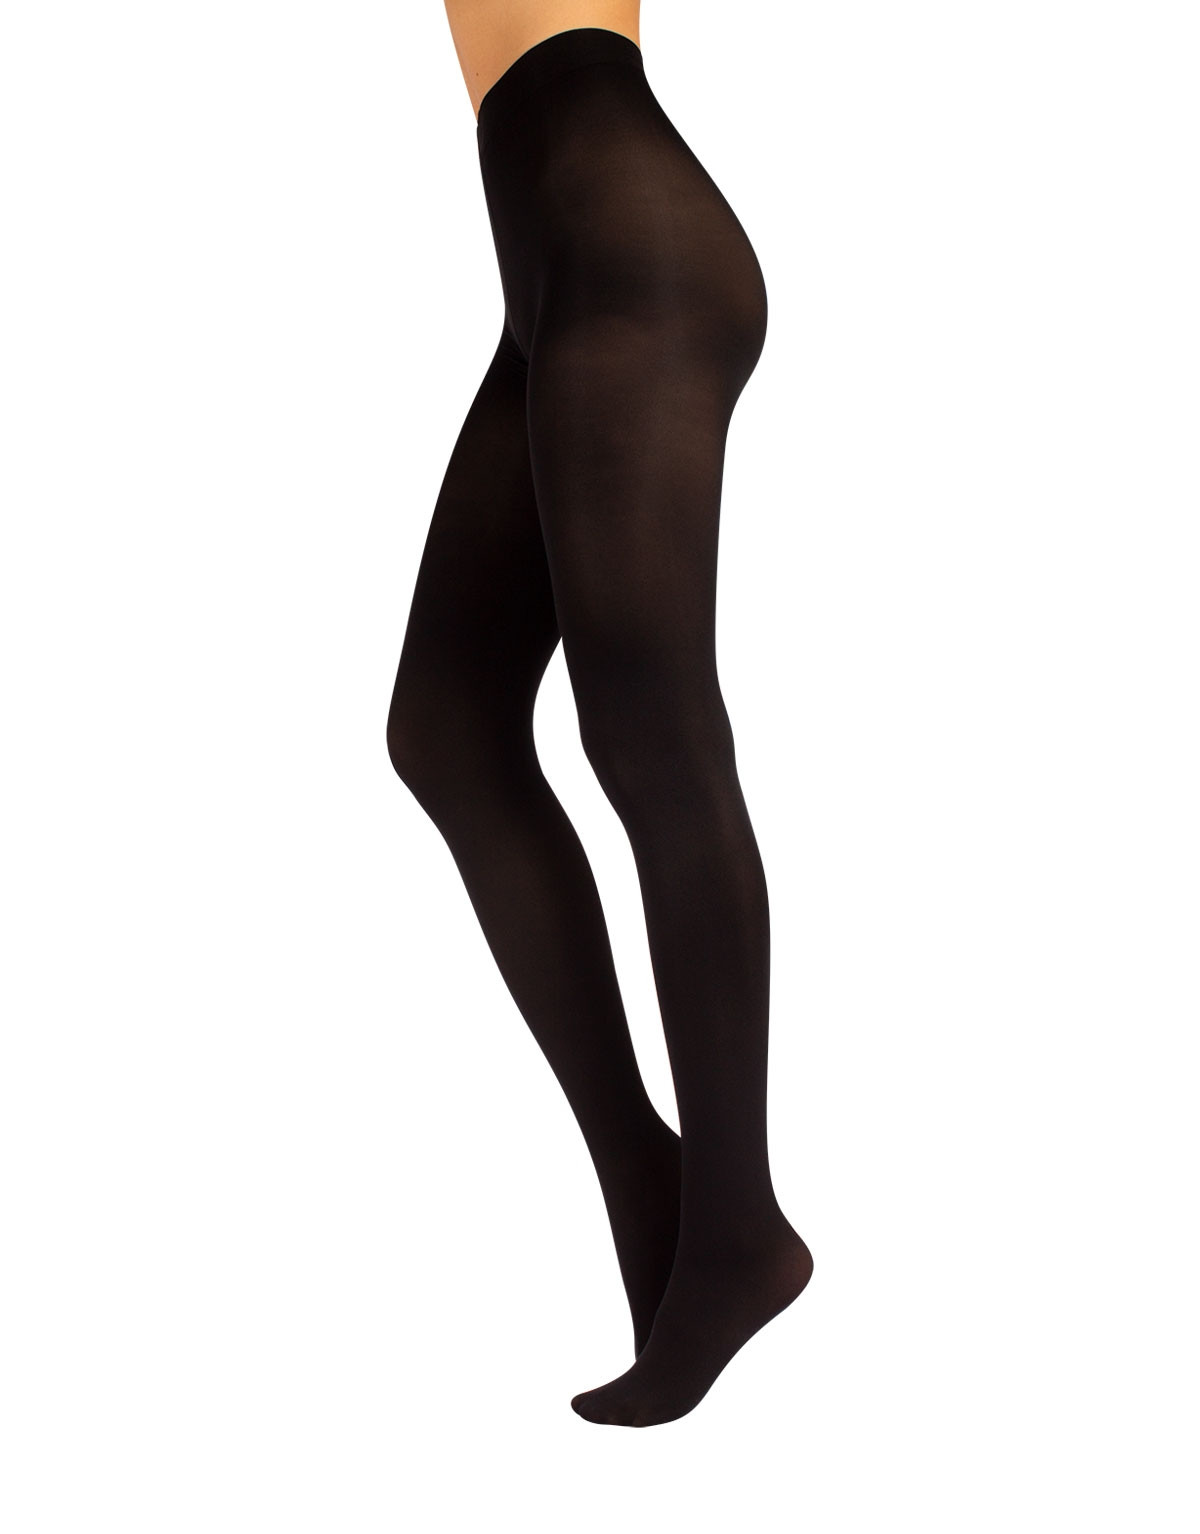 OPAQUE MICROFIBER TIGHTS - 80 DEN